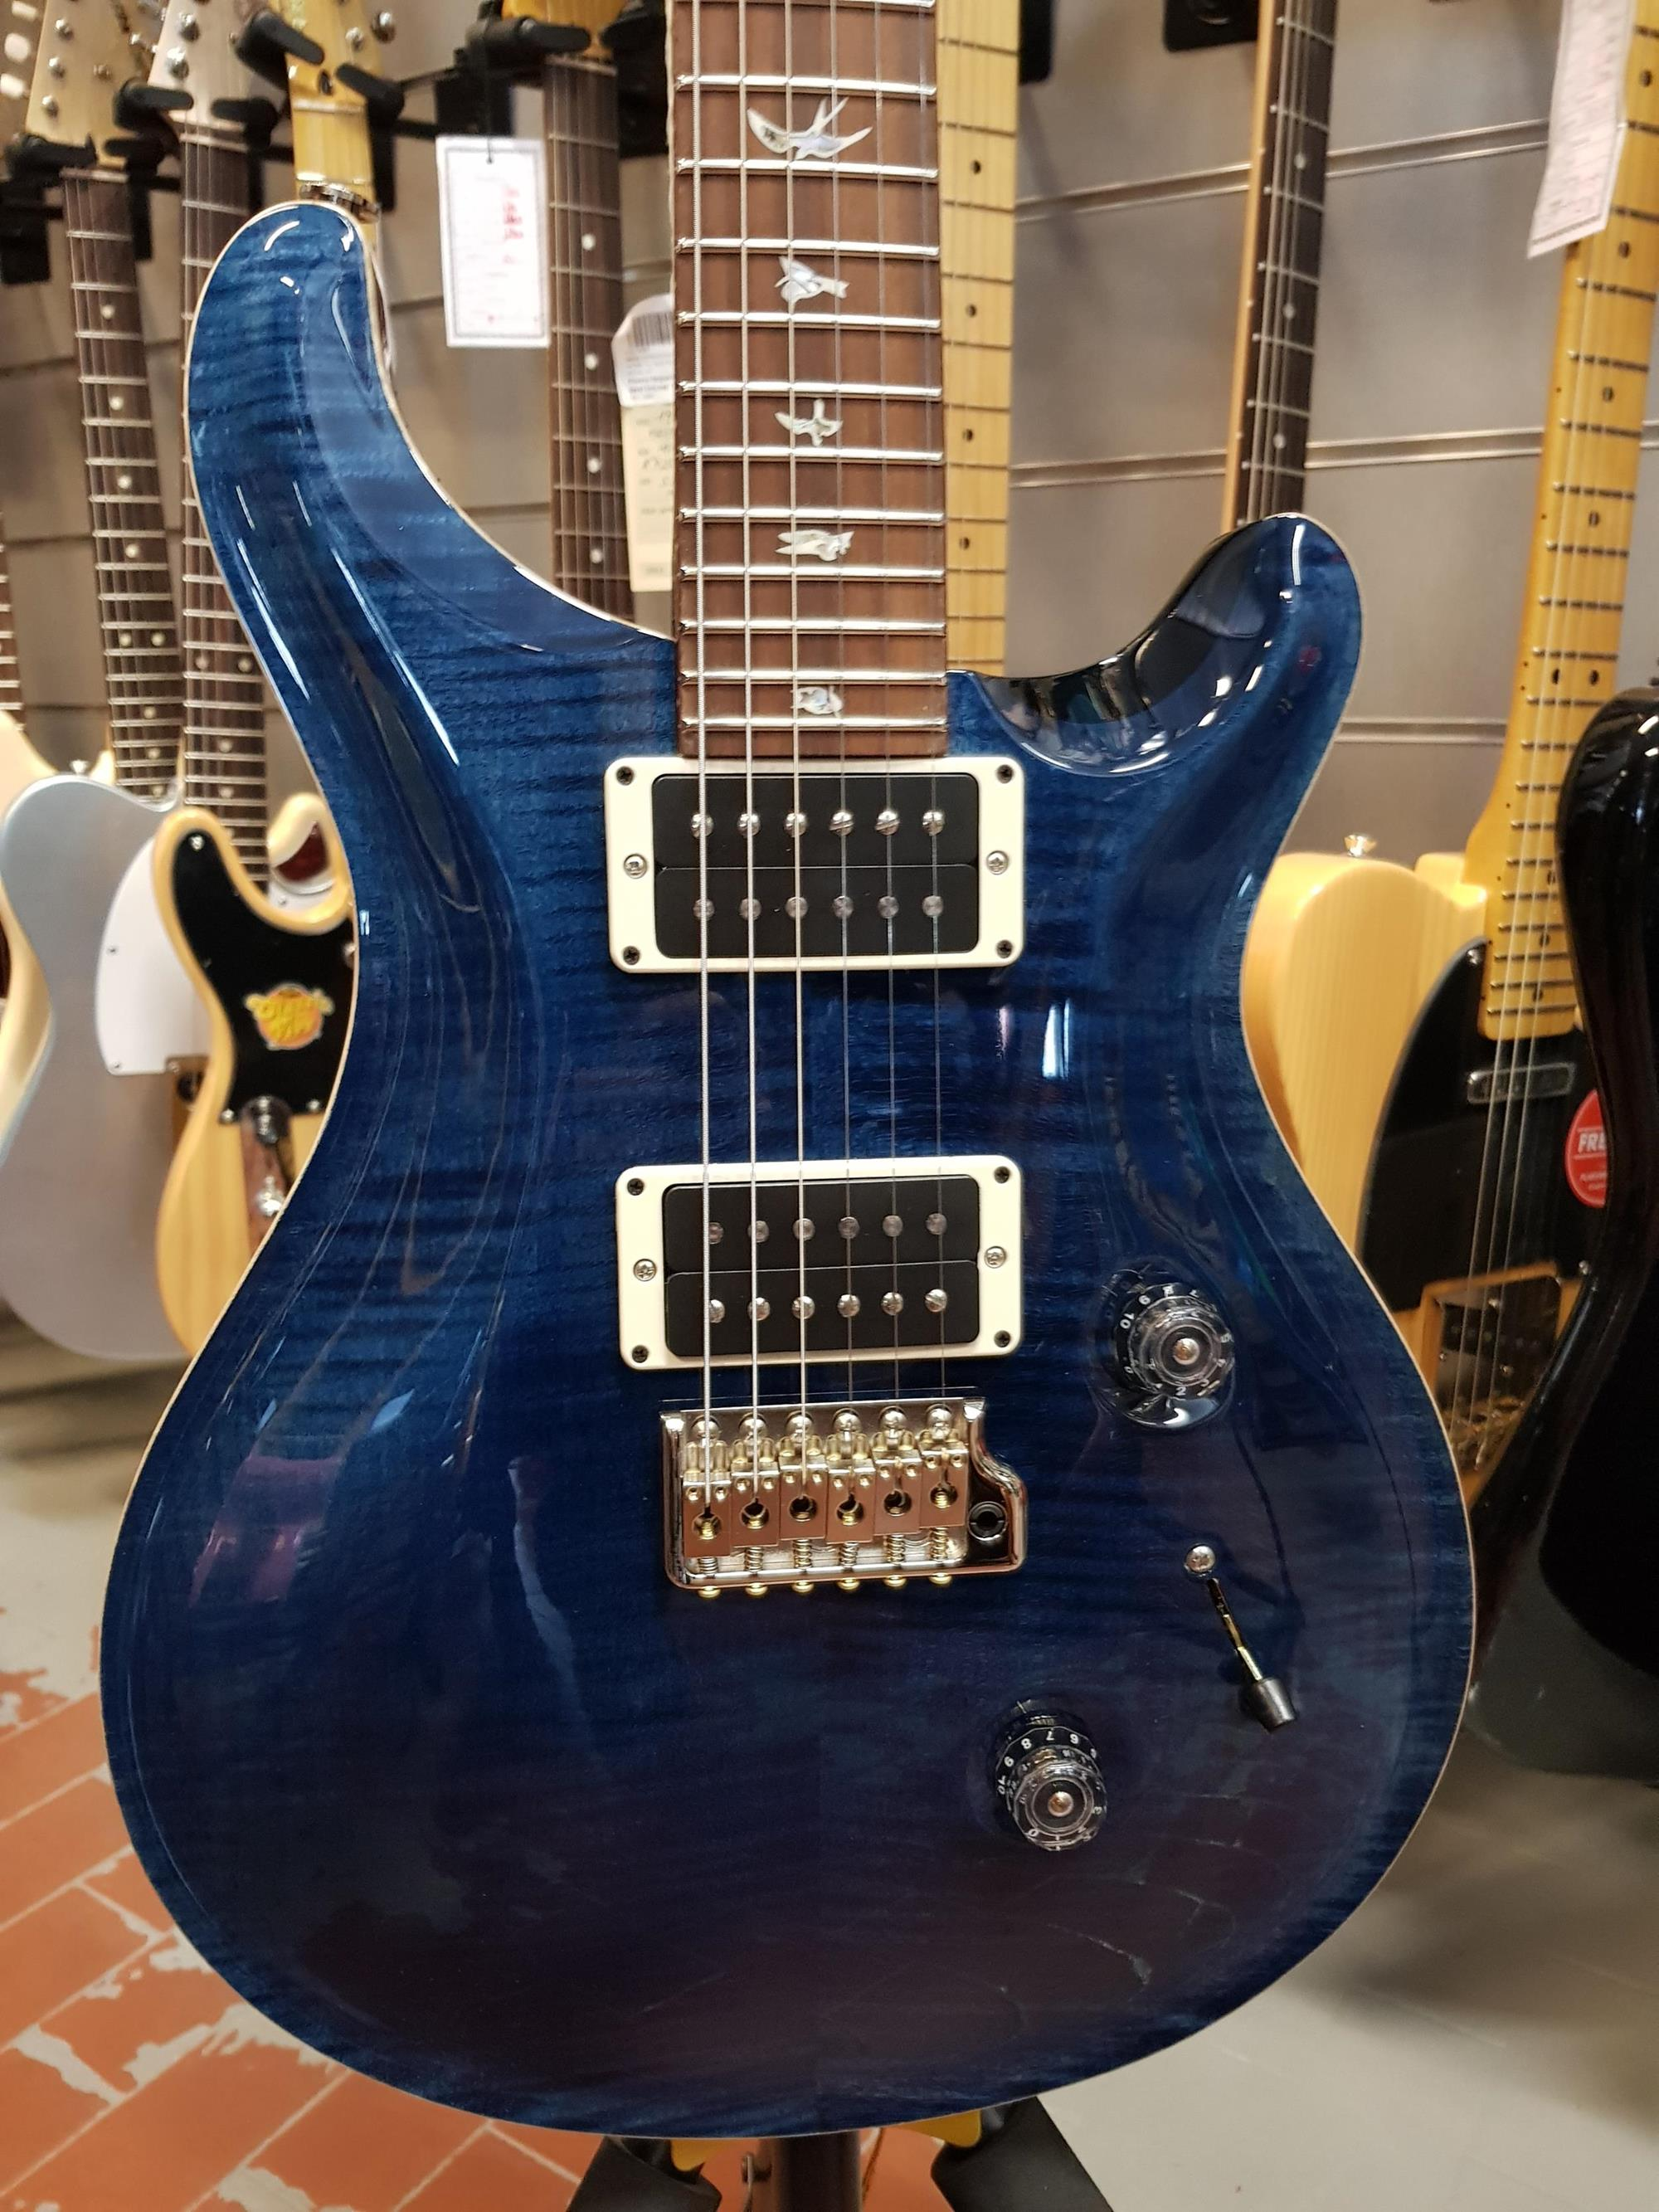 PRS - PAUL REED SMITH CORE CUSTOM 24 BIRDS WHALE BLUE 85/15 - Chitarre Chitarre - Elettriche